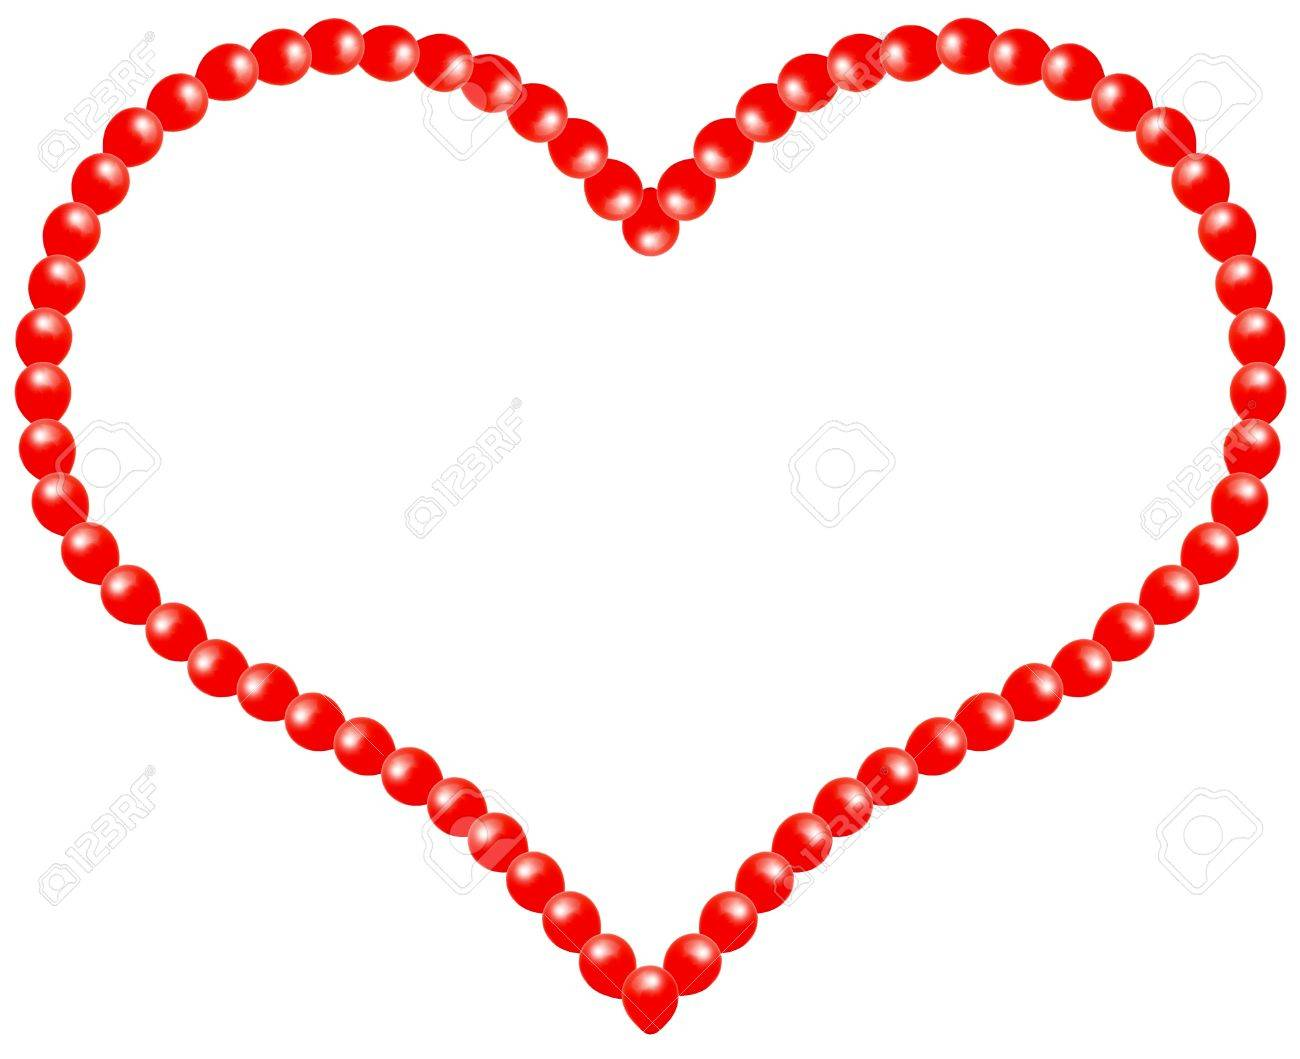 Valentine\'s Day Heart Frame Design With Room For Text.Isolated ...